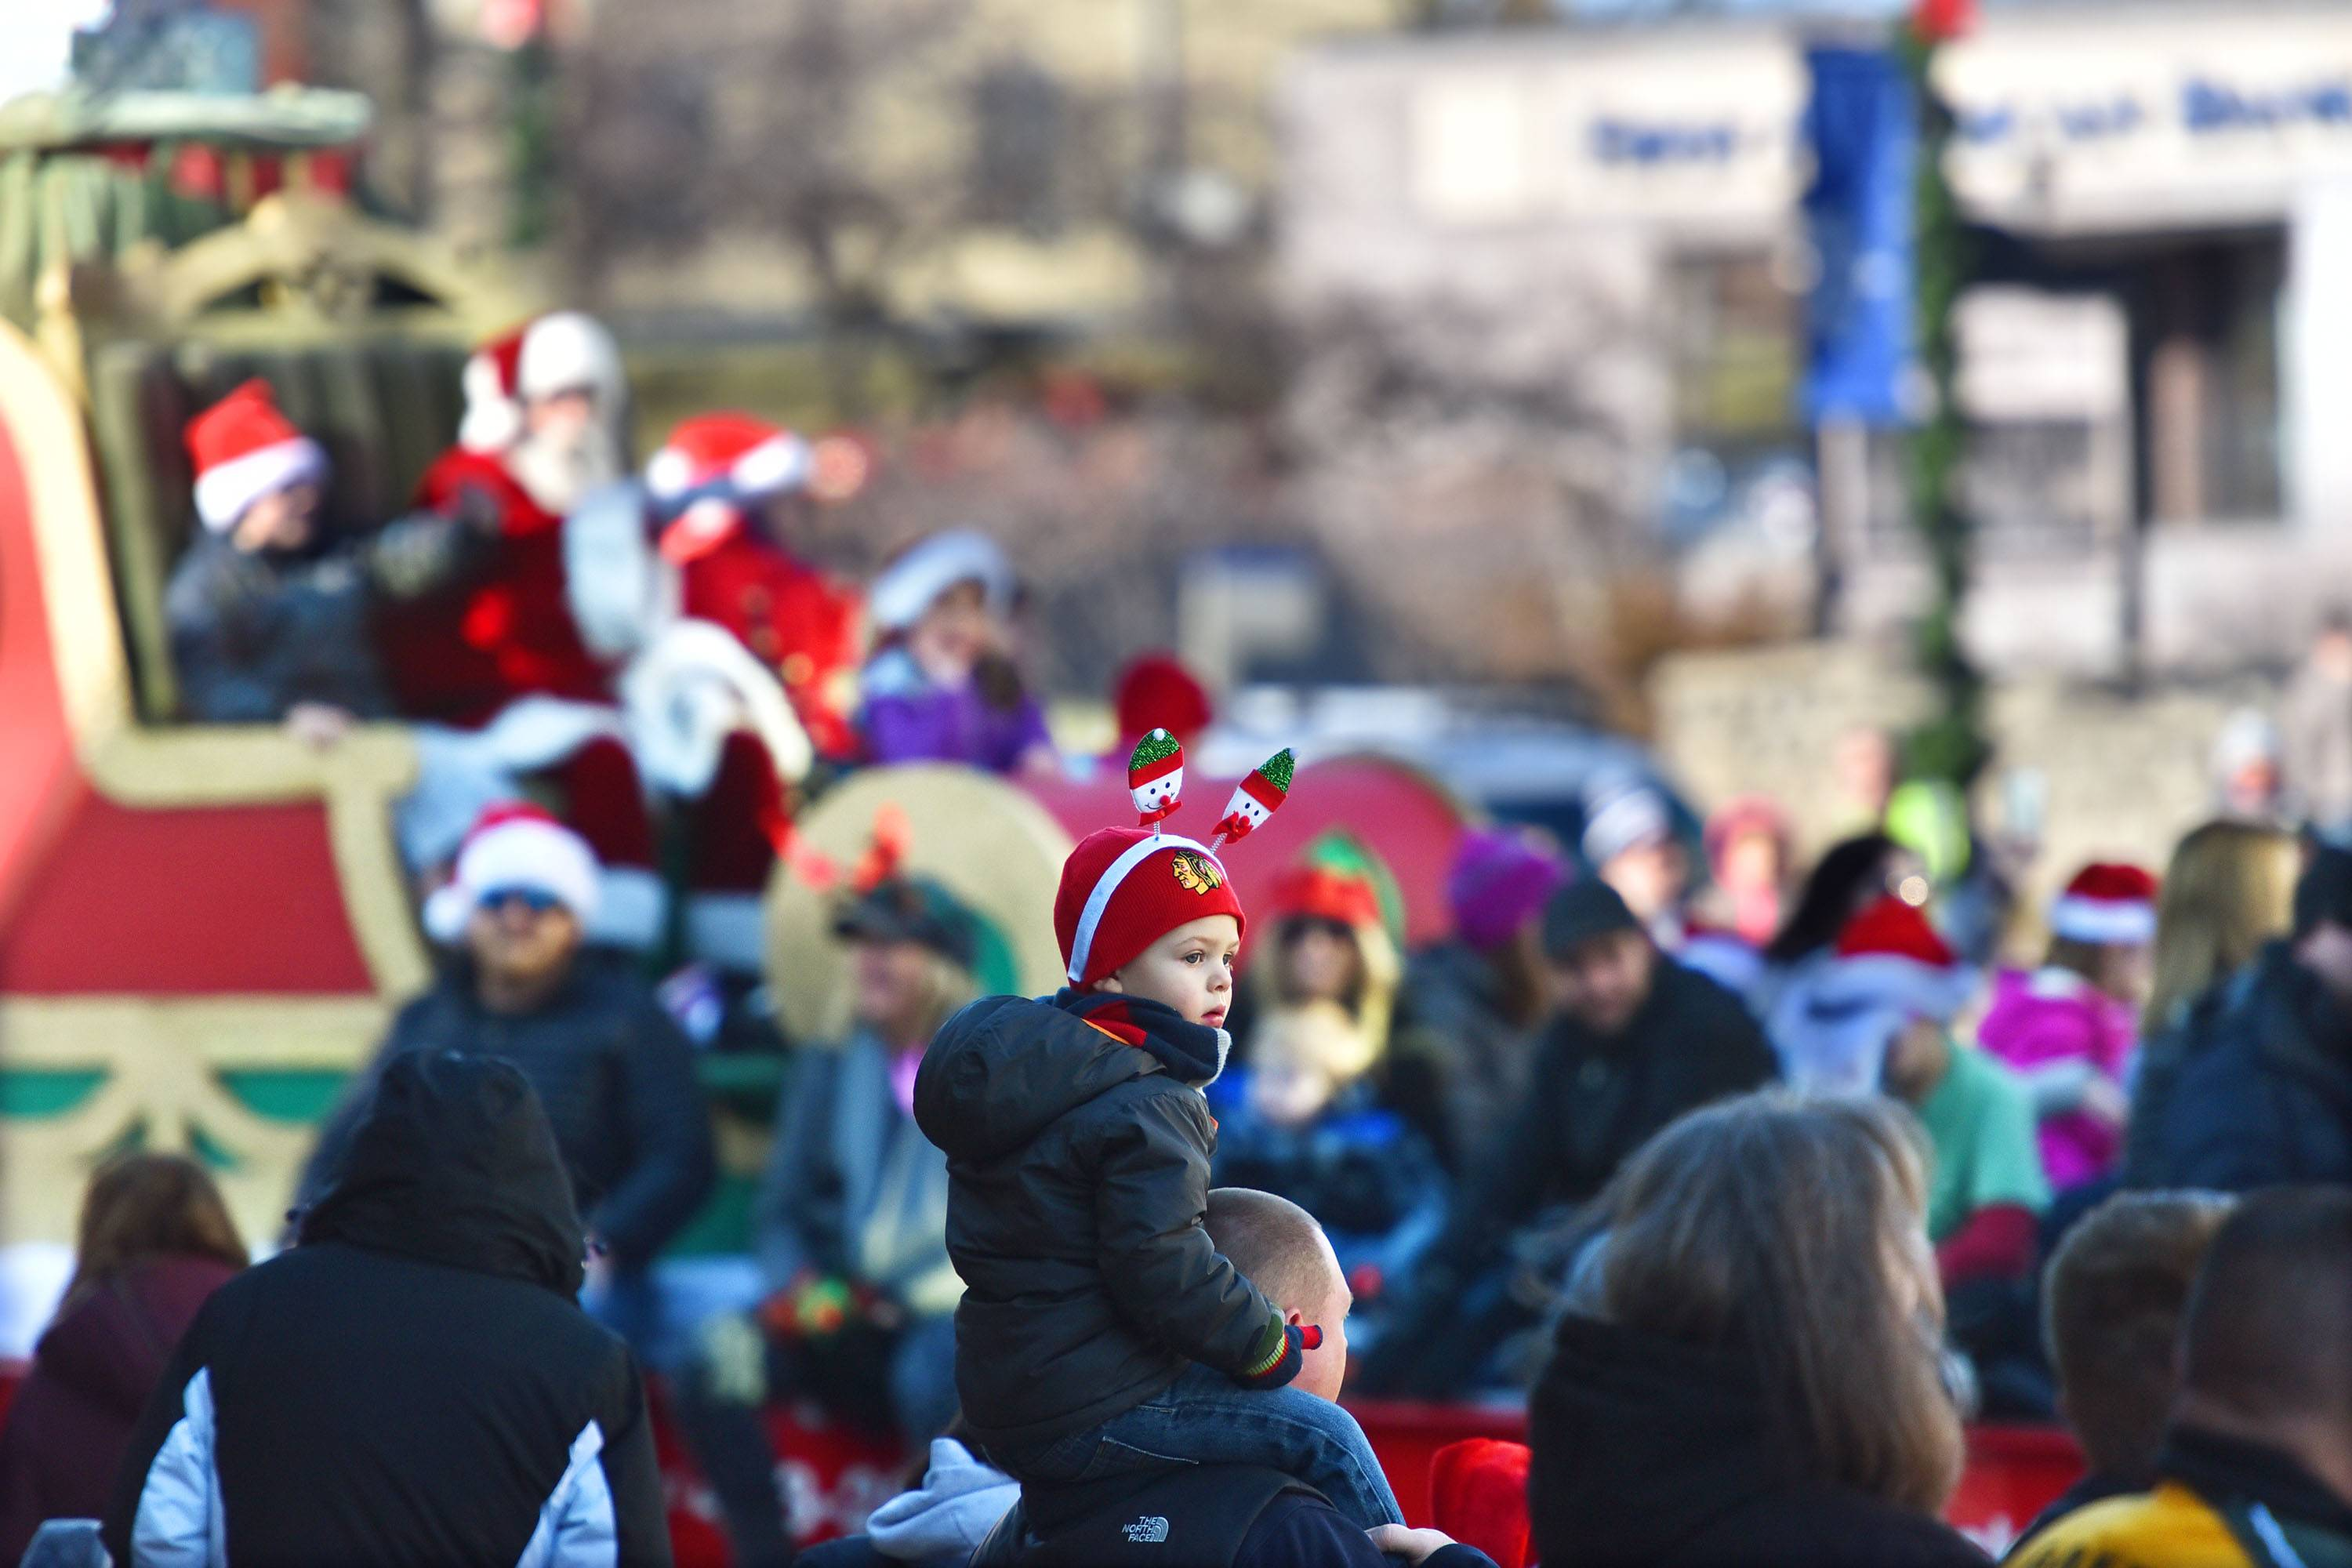 Trevor Crumpley, 3, doesn't notice that Santa Claus is coming down Main Street during the Dickens in Dundee Christmas Parade that started in West Dundee and crossed the Fox River to East Dundee on Saturday. Trevor was wearing a holiday ornament hat while sitting on the shoulders of his dad, Bob Crumpley of Algonquin.